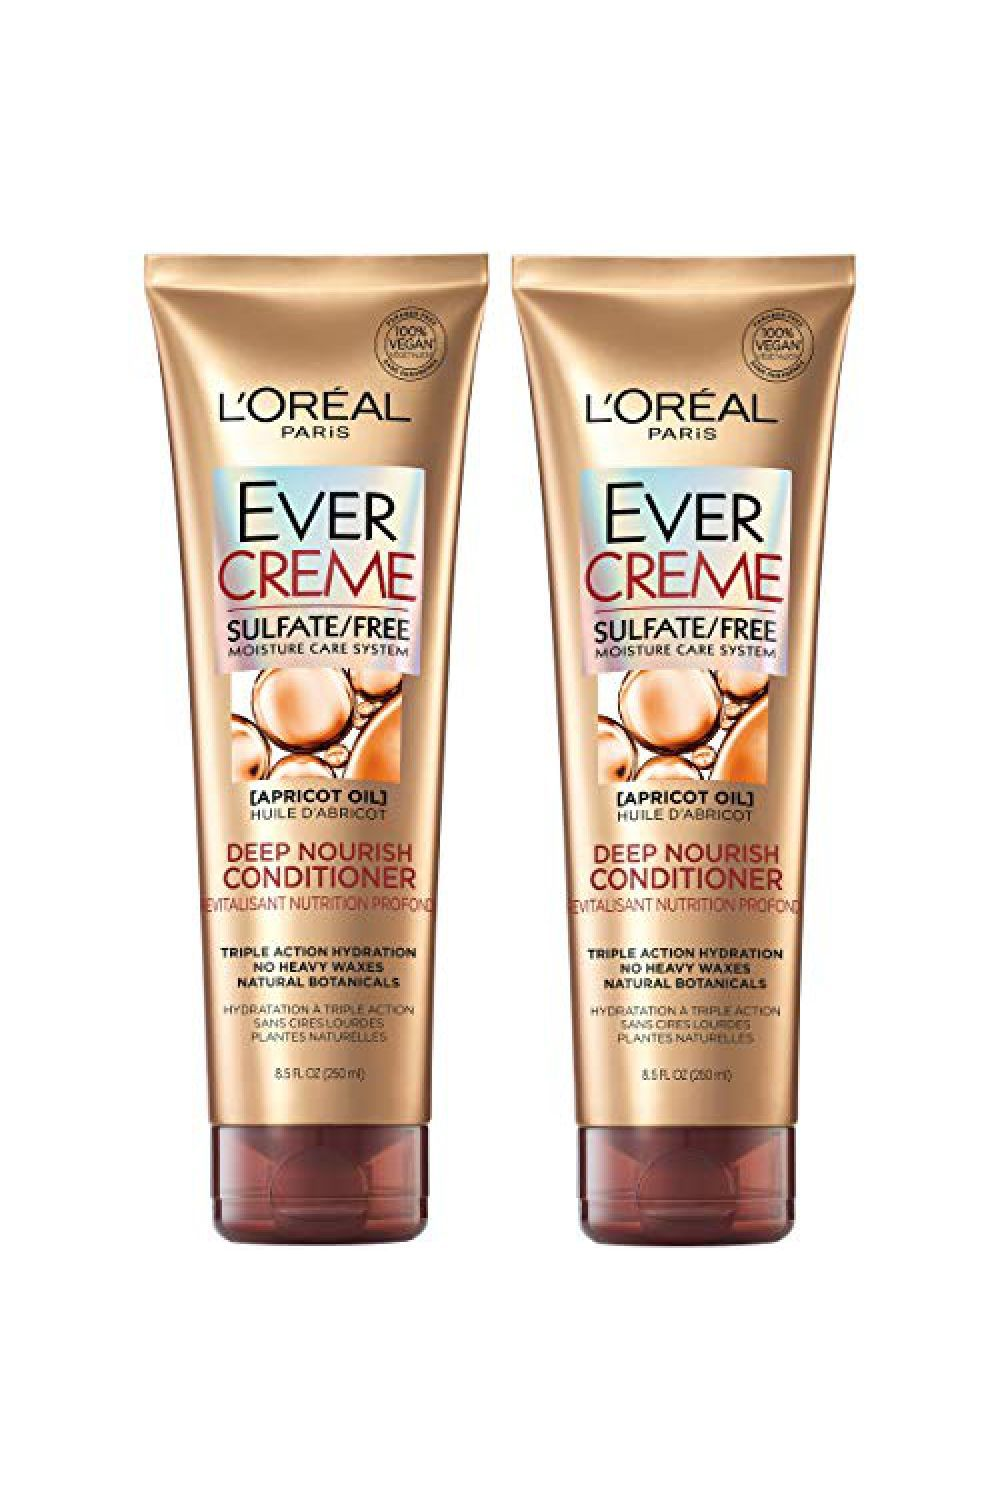 L'Oréal Paris Hair Care EverCreme Sulfate Free in 2020